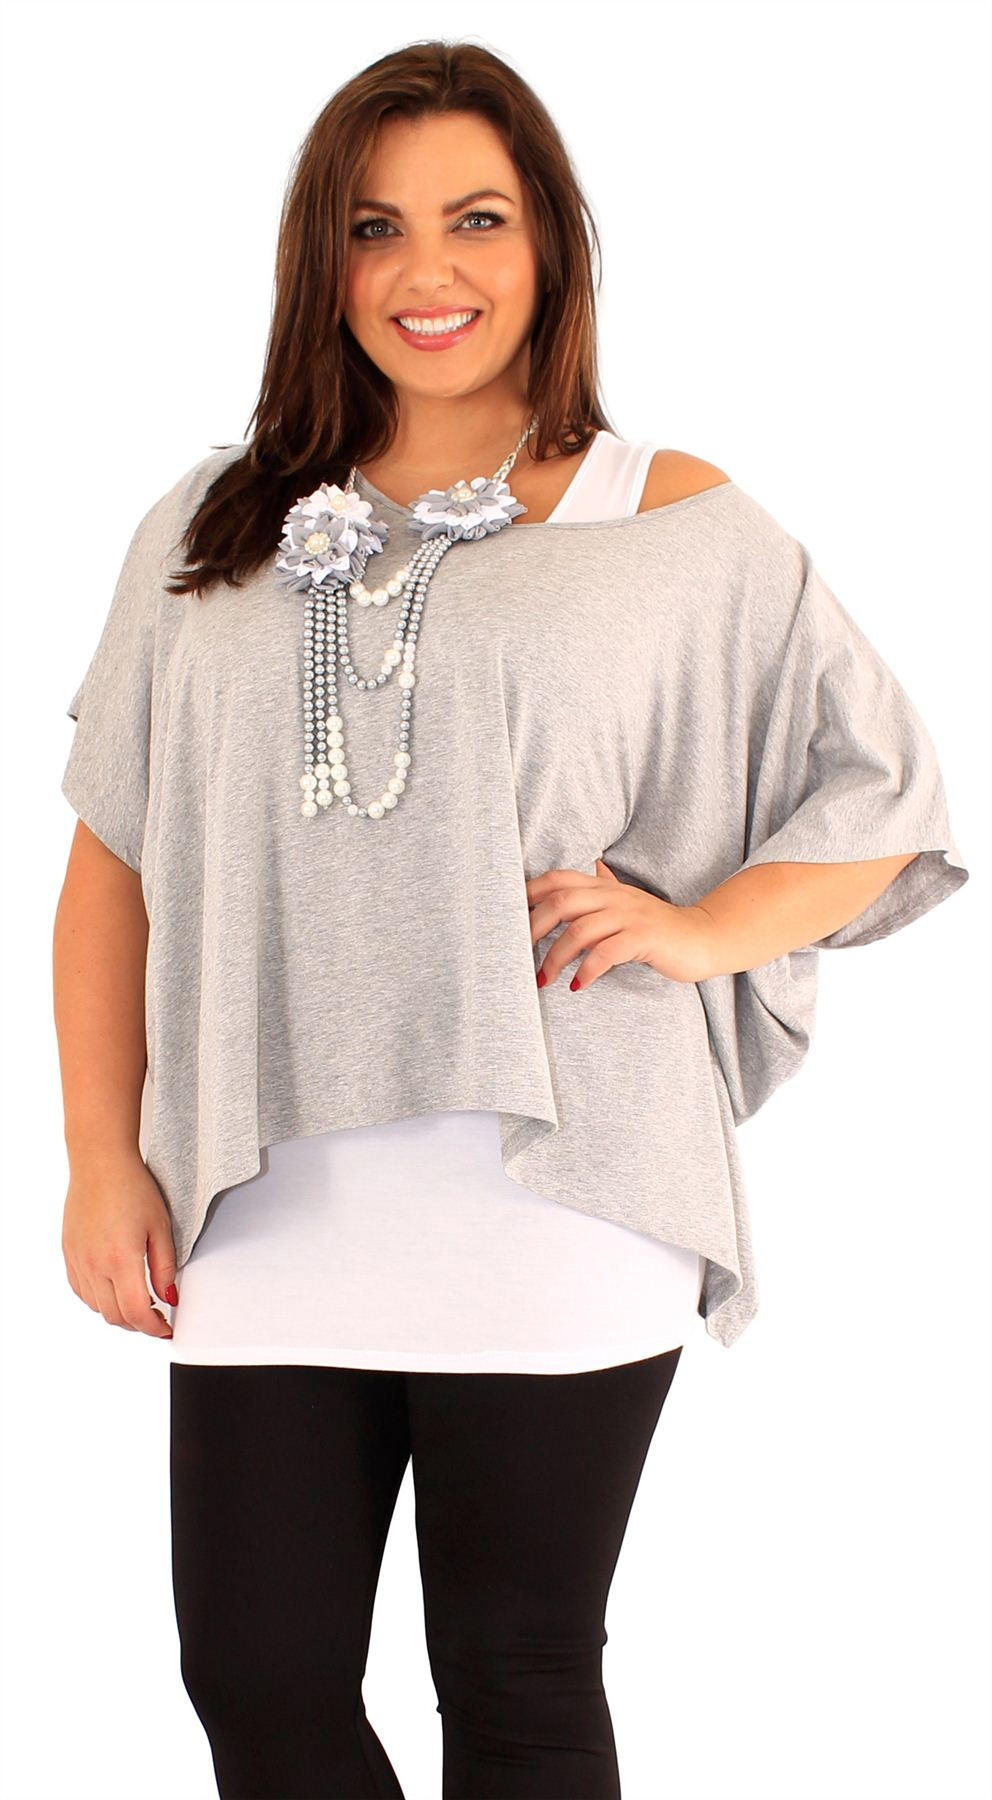 These plus size tops and tees sized S to 7X and 12 through 48 fit your curves. Shop basic, embellished, printed or patterned tunics, popovers or button-front styles in woven cotton or knit blends. Designed by the most plus size brands available in one place.